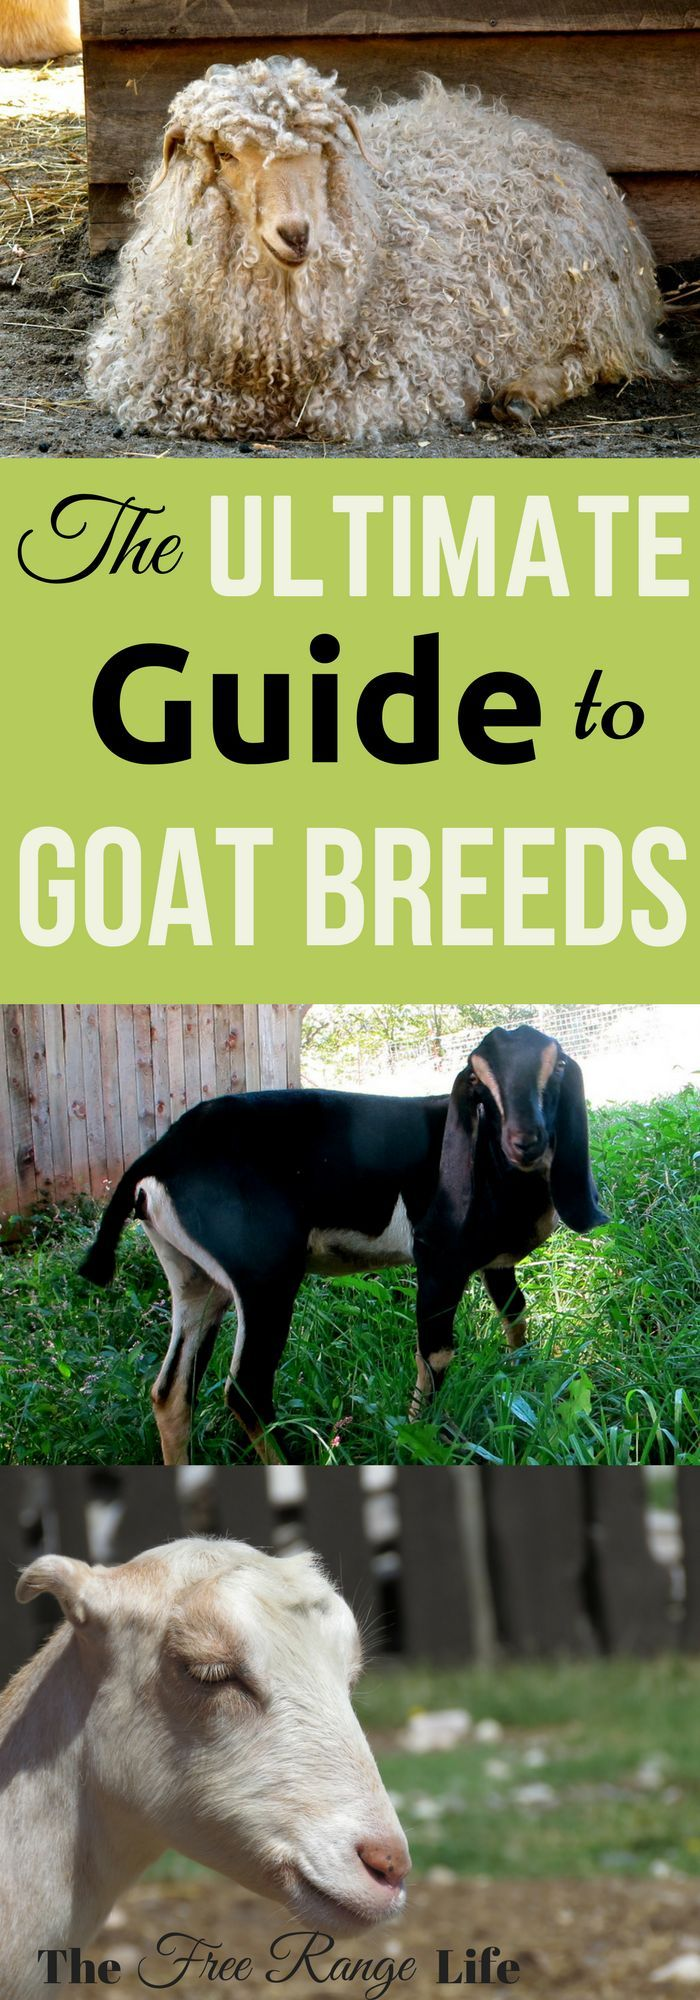 Do you want to raise goats? Click to learn more about all of the different goat breeds and see which is right for you!